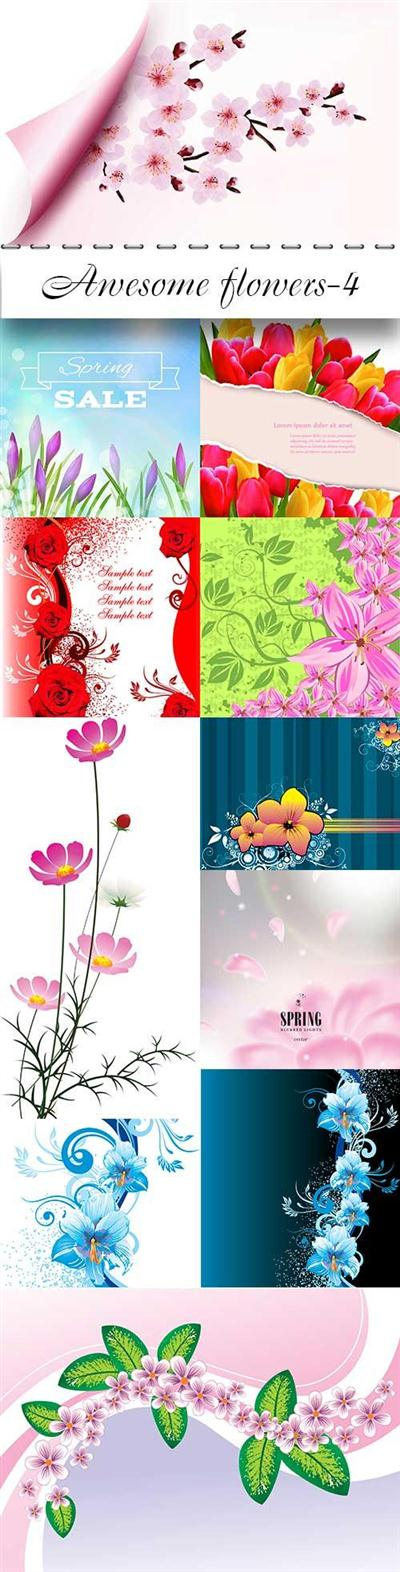 Awesome vector flowers-4